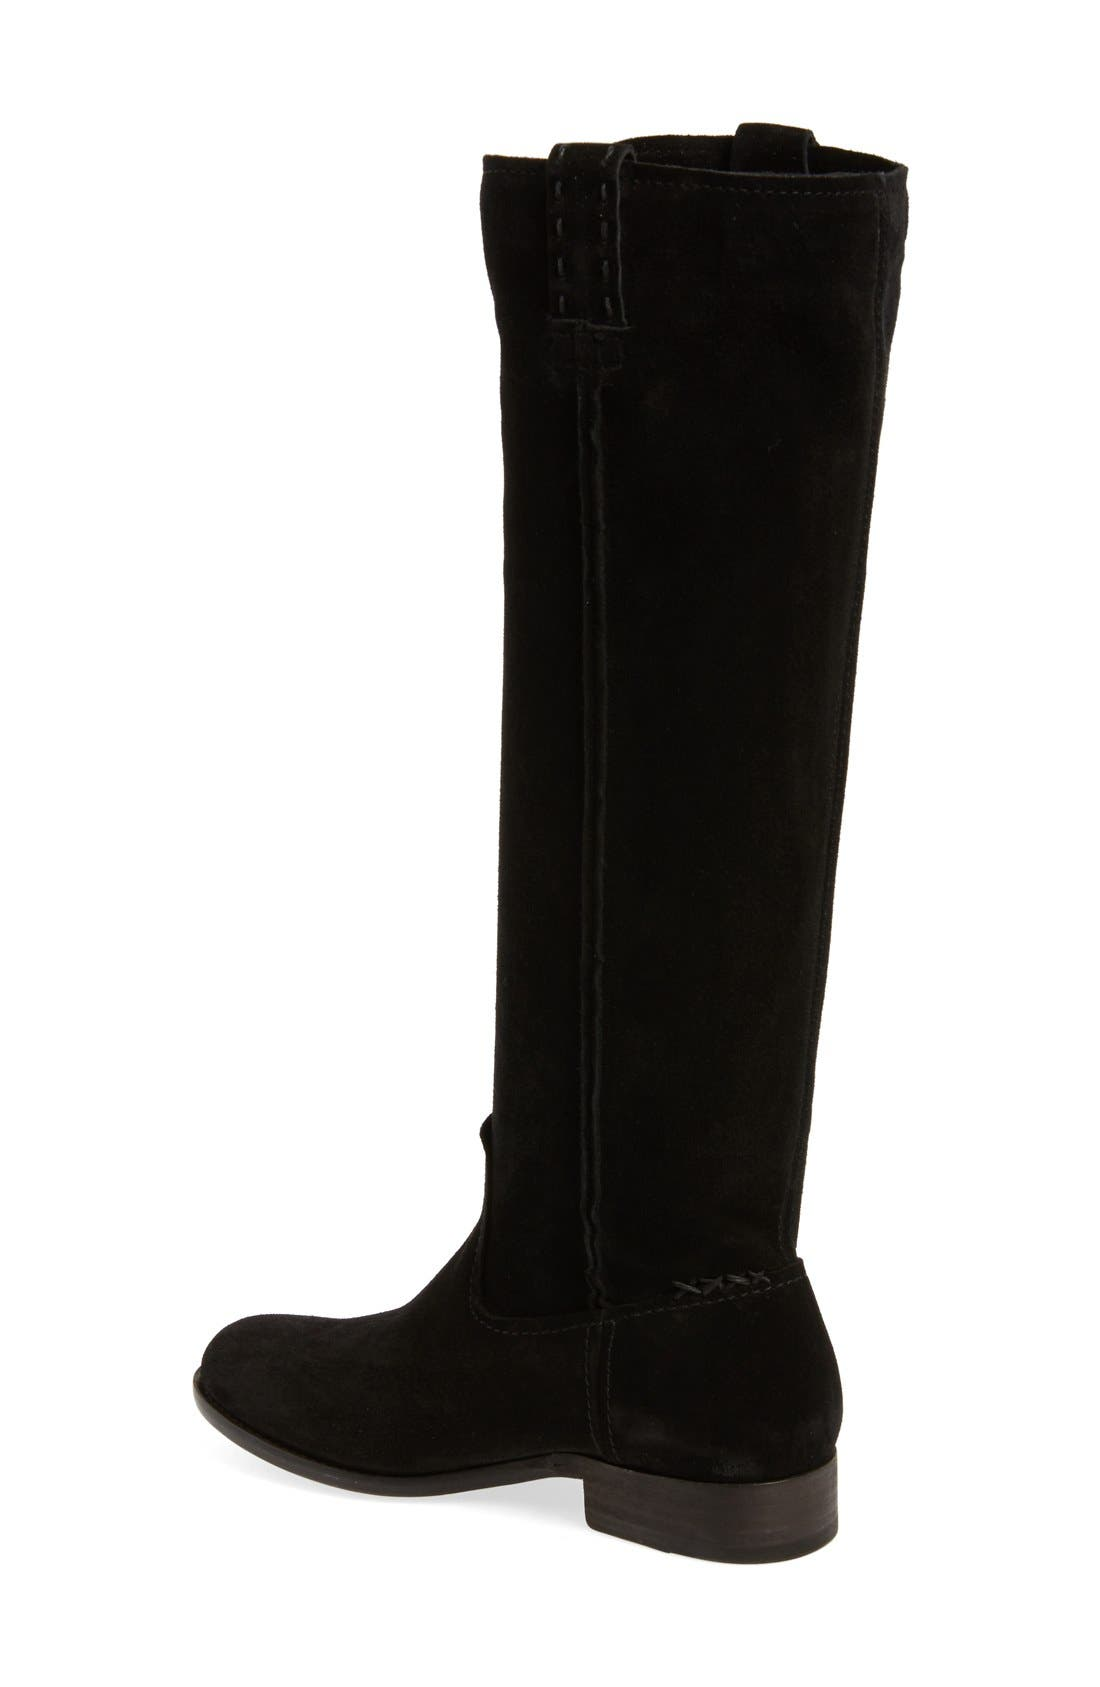 Alternate Image 2  - Frye 'Cara' Tall Boot (Women)